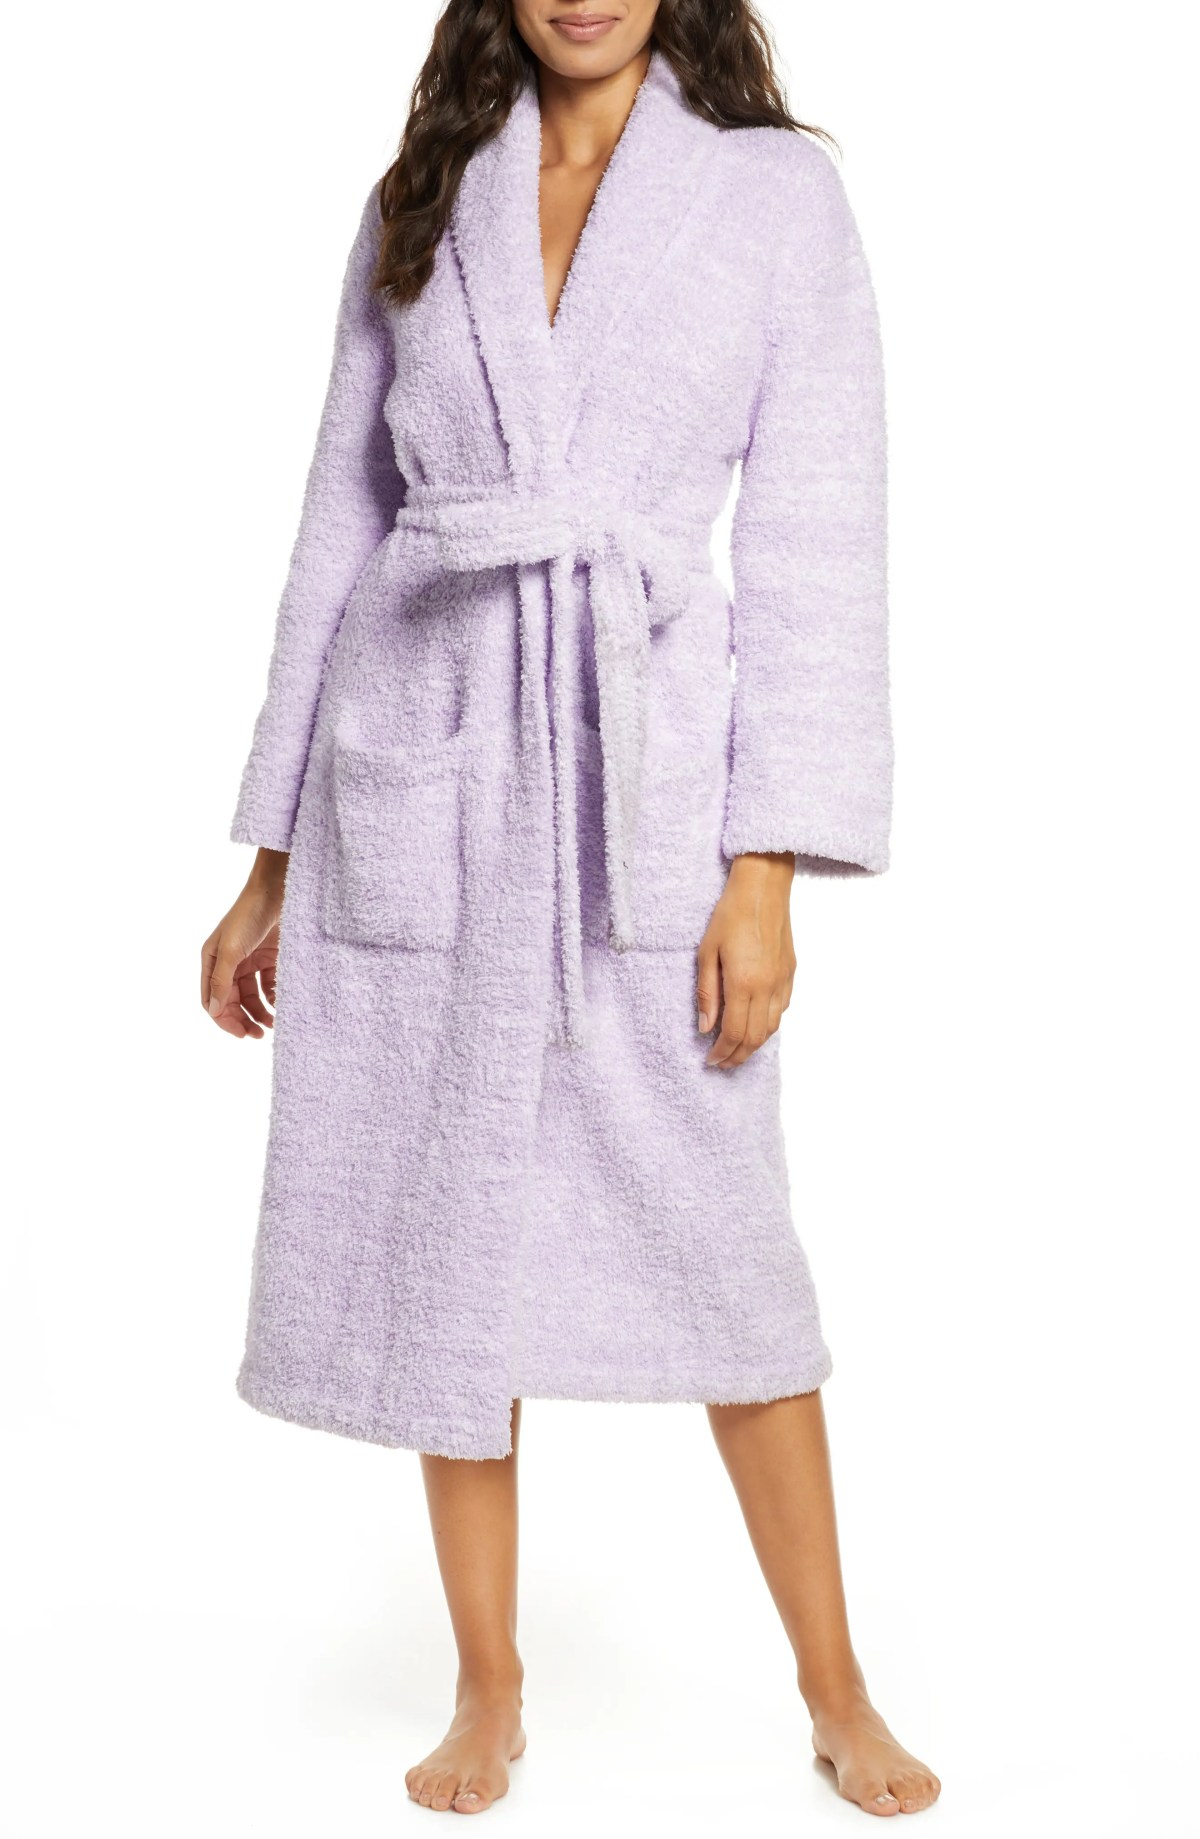 BAREFOOT DREAMS<SUP>®</SUP> CozyChic<sup>®</sup> Robe, Main, color, HE LAVENDER/WHITE